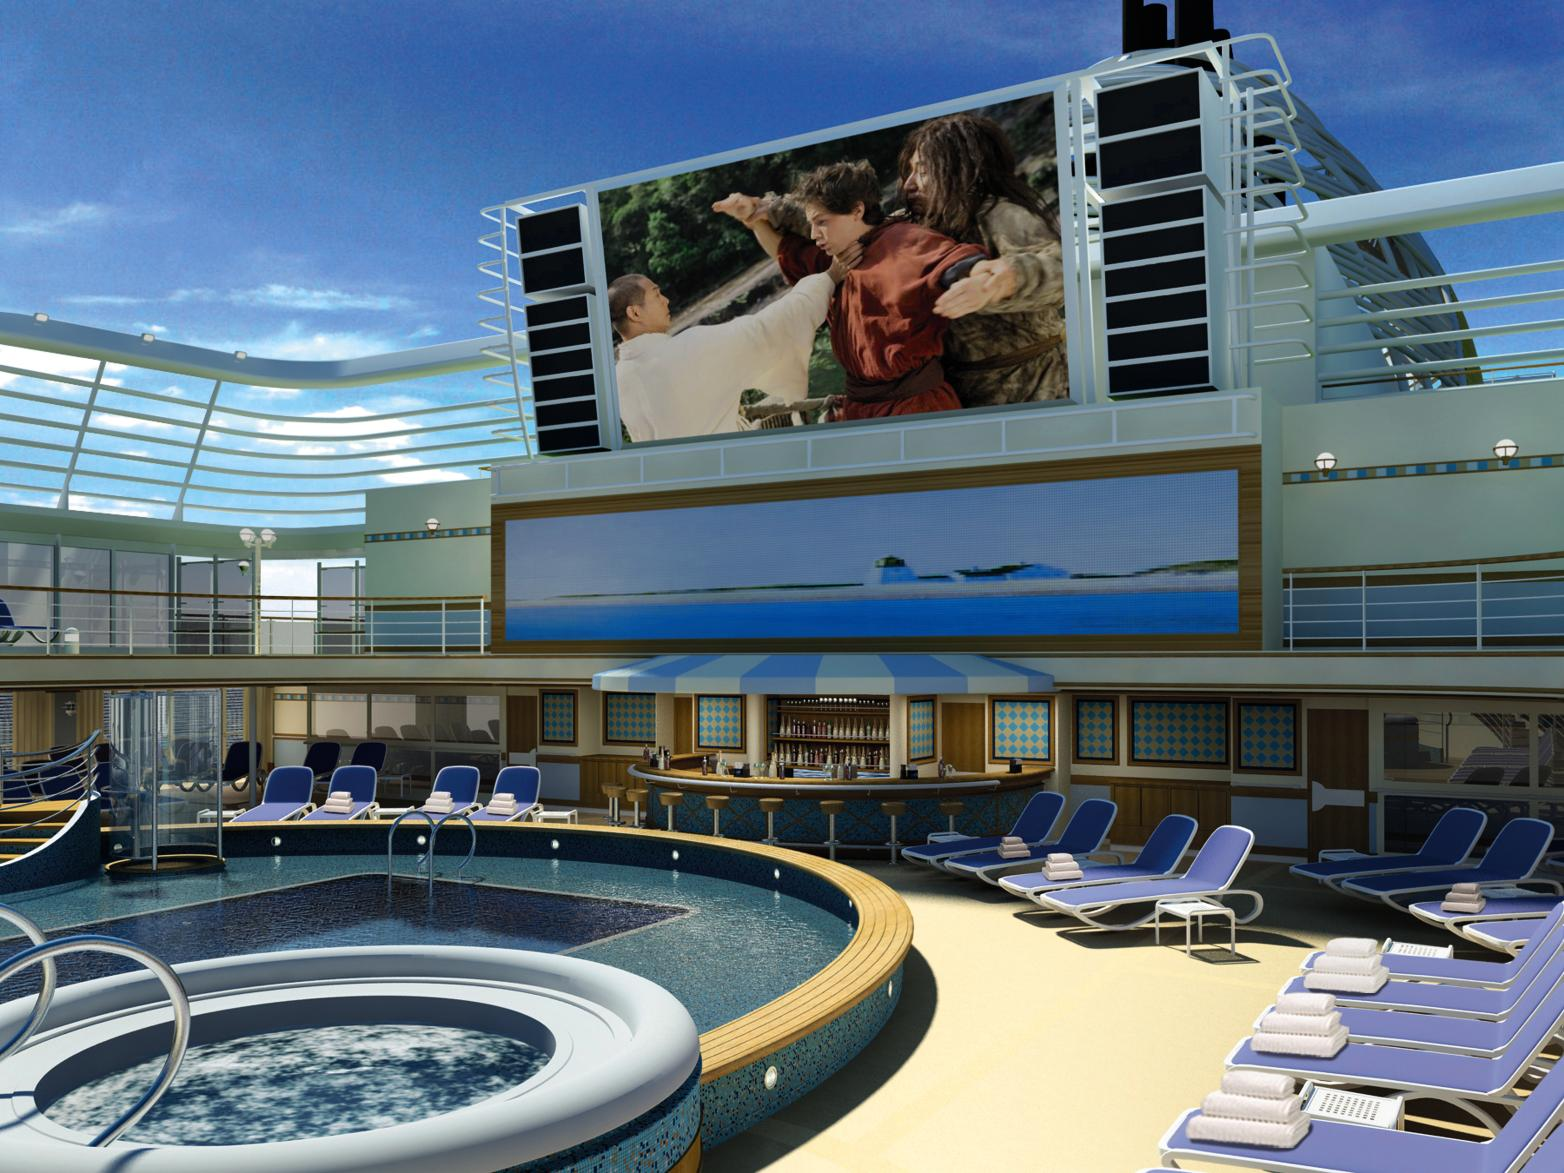 P&amp;O Cruises Digital Signage_1